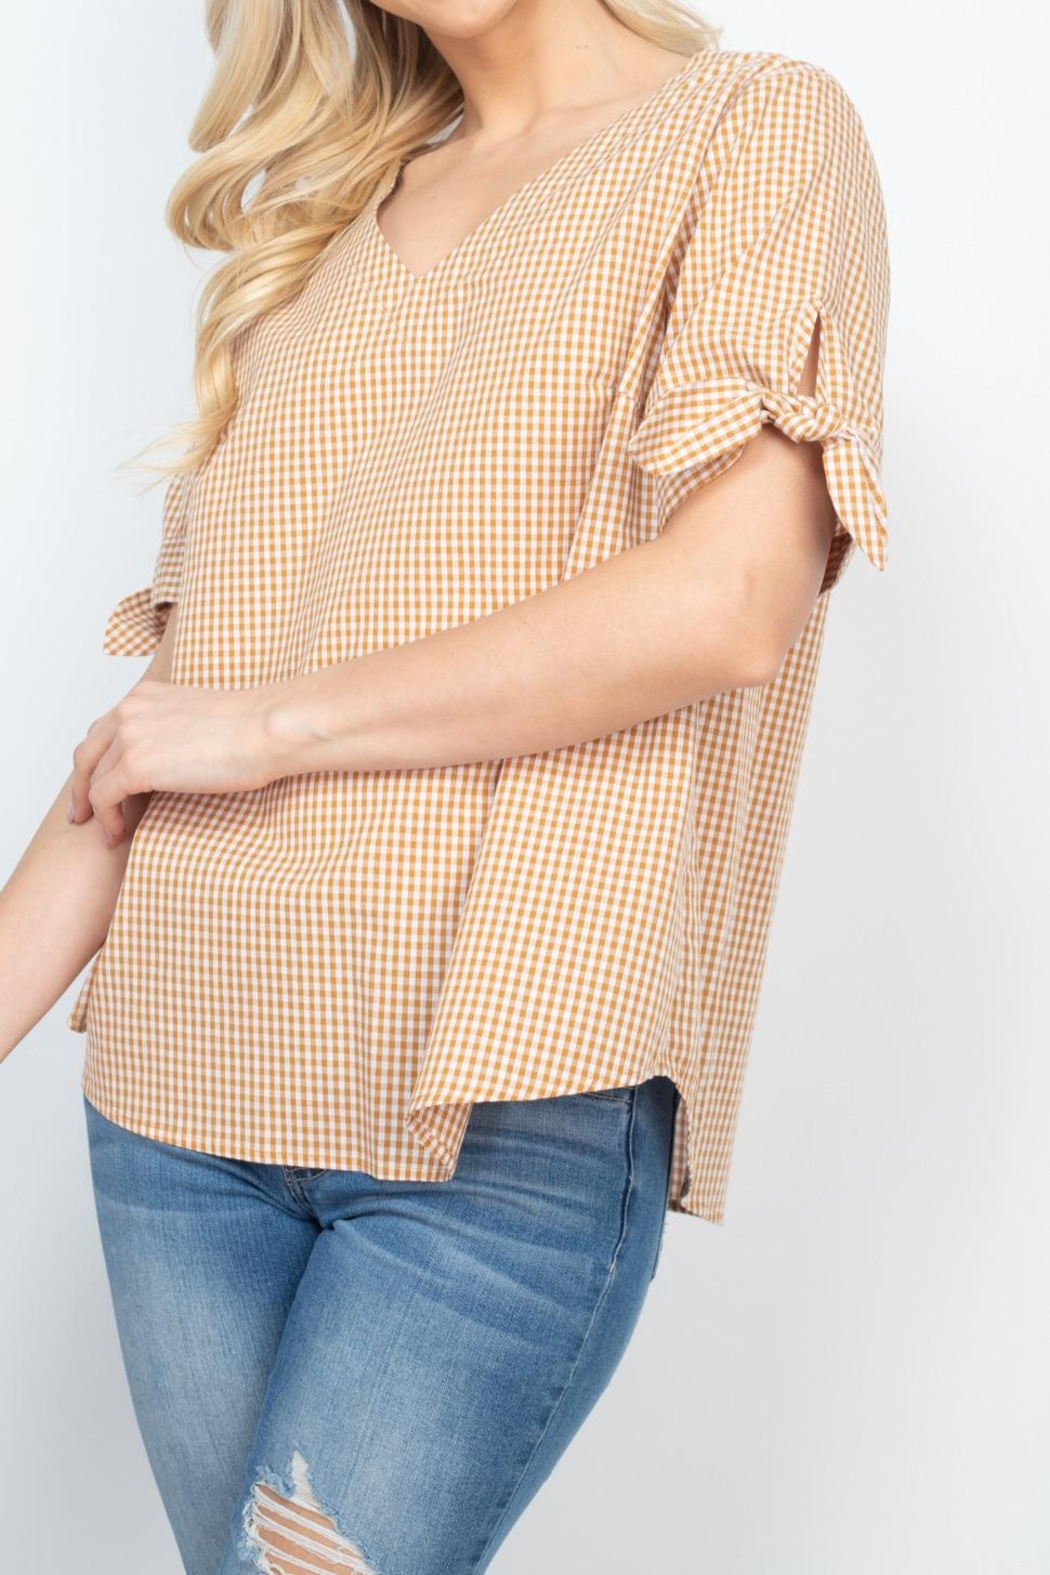 Riah Fashion Mary-Gold-Top - Back Cropped Image